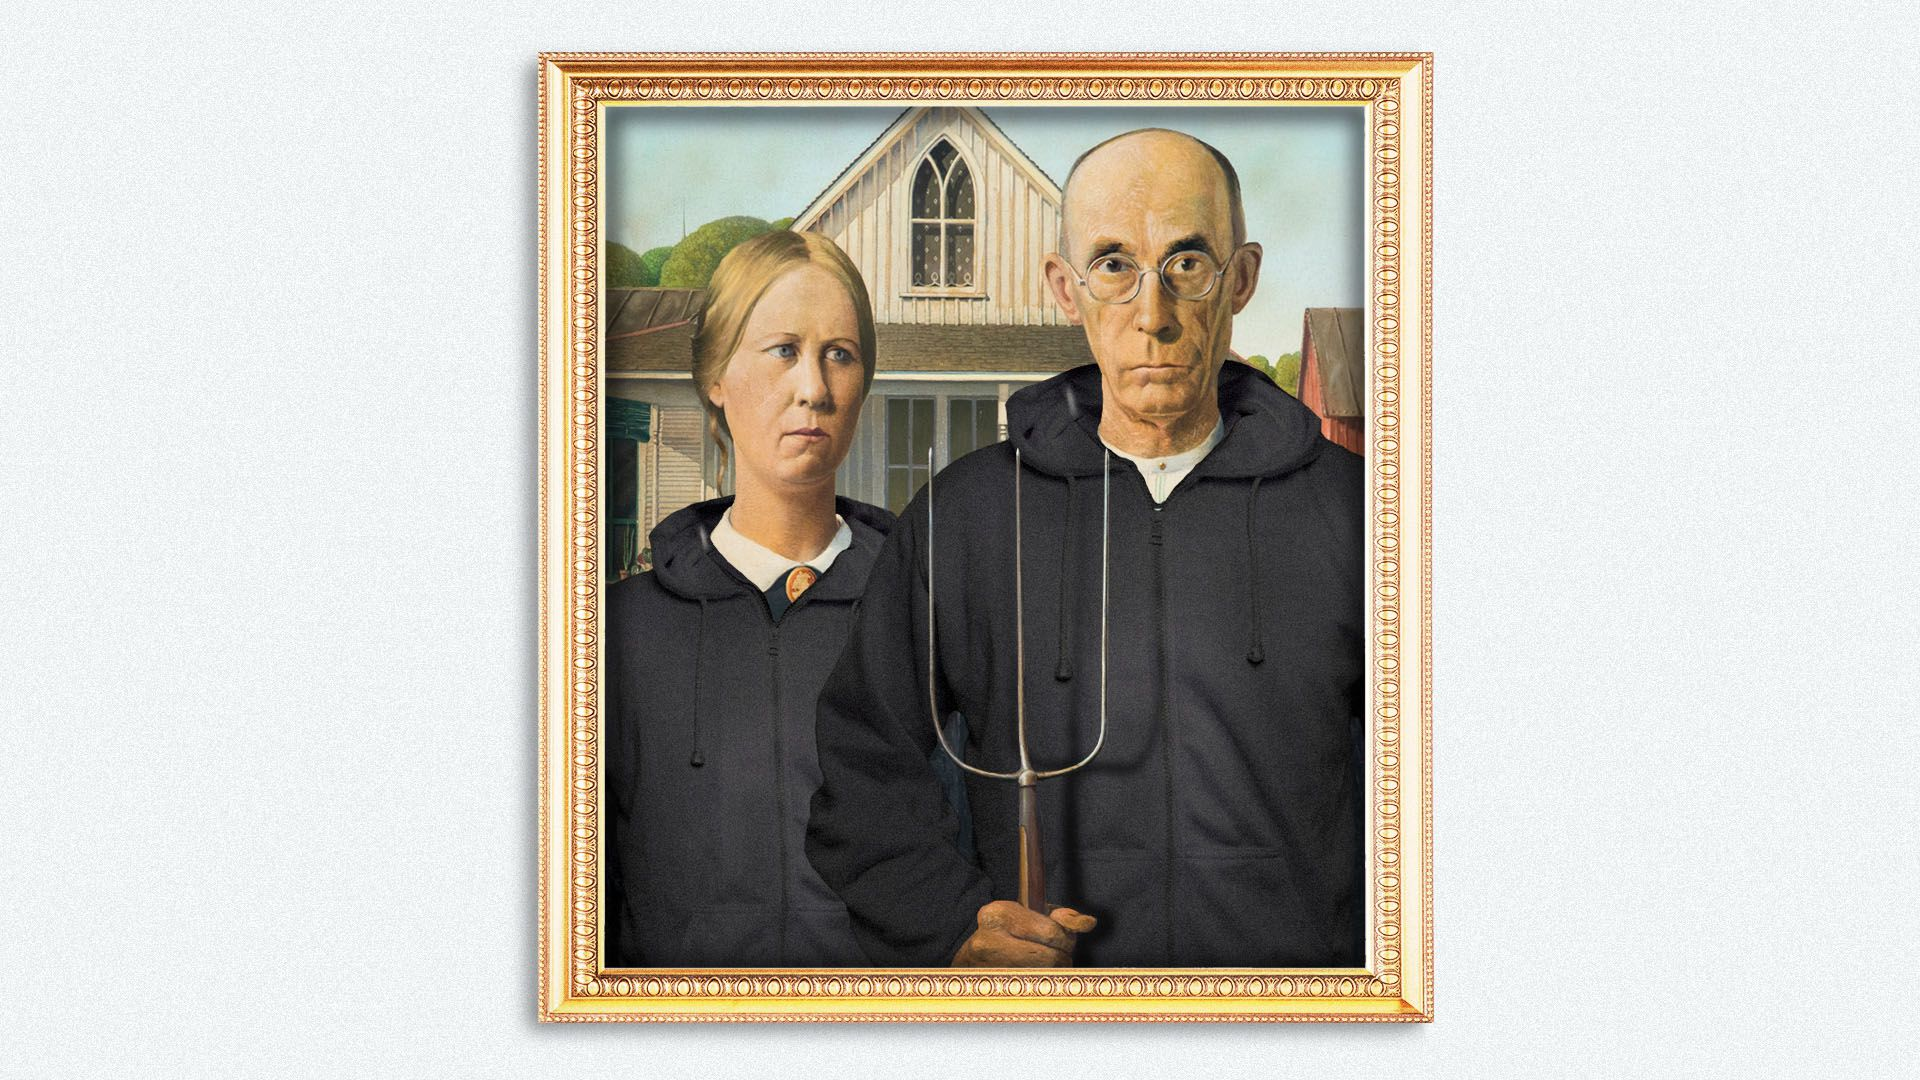 llustration of the painting American Gothic with the subjects wearing hoodies.